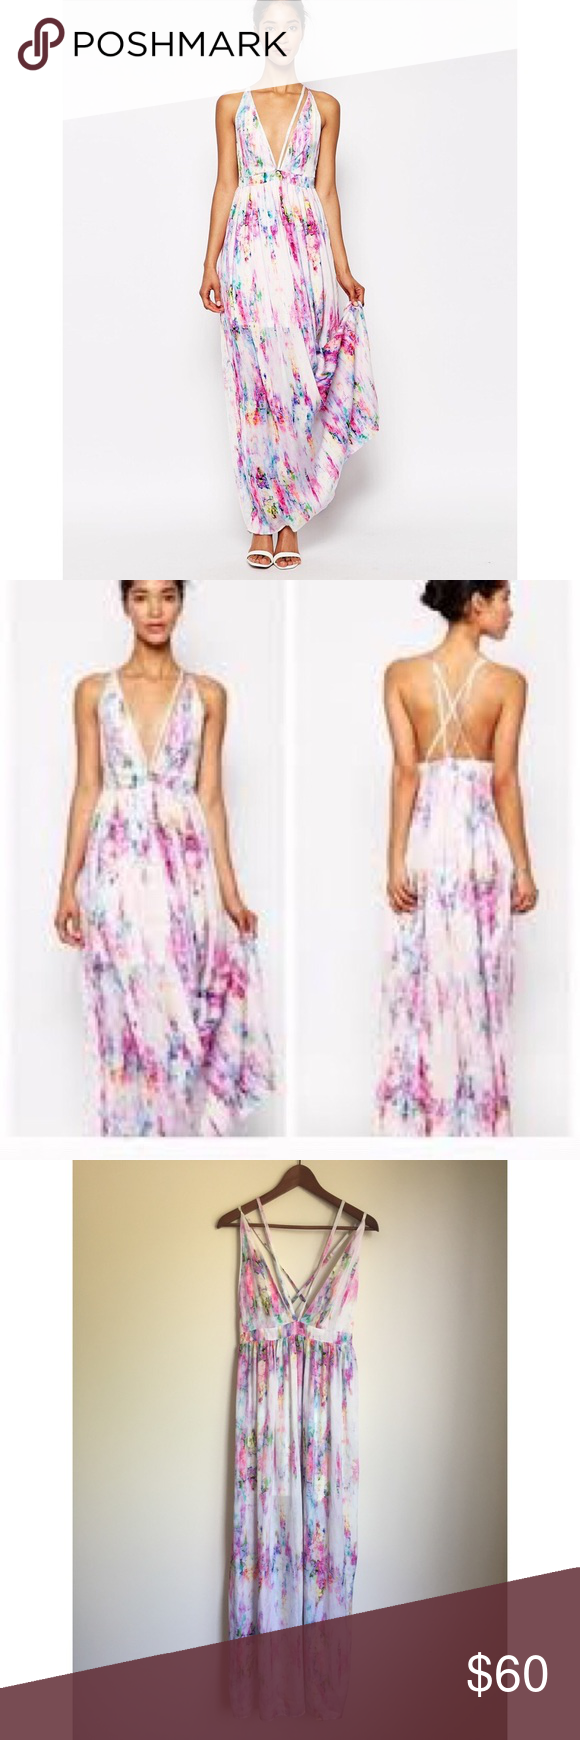 Oh My Love London Carrie Watercolor Maxi Dress Dresses Clothes Design Fashion [ 1740 x 580 Pixel ]